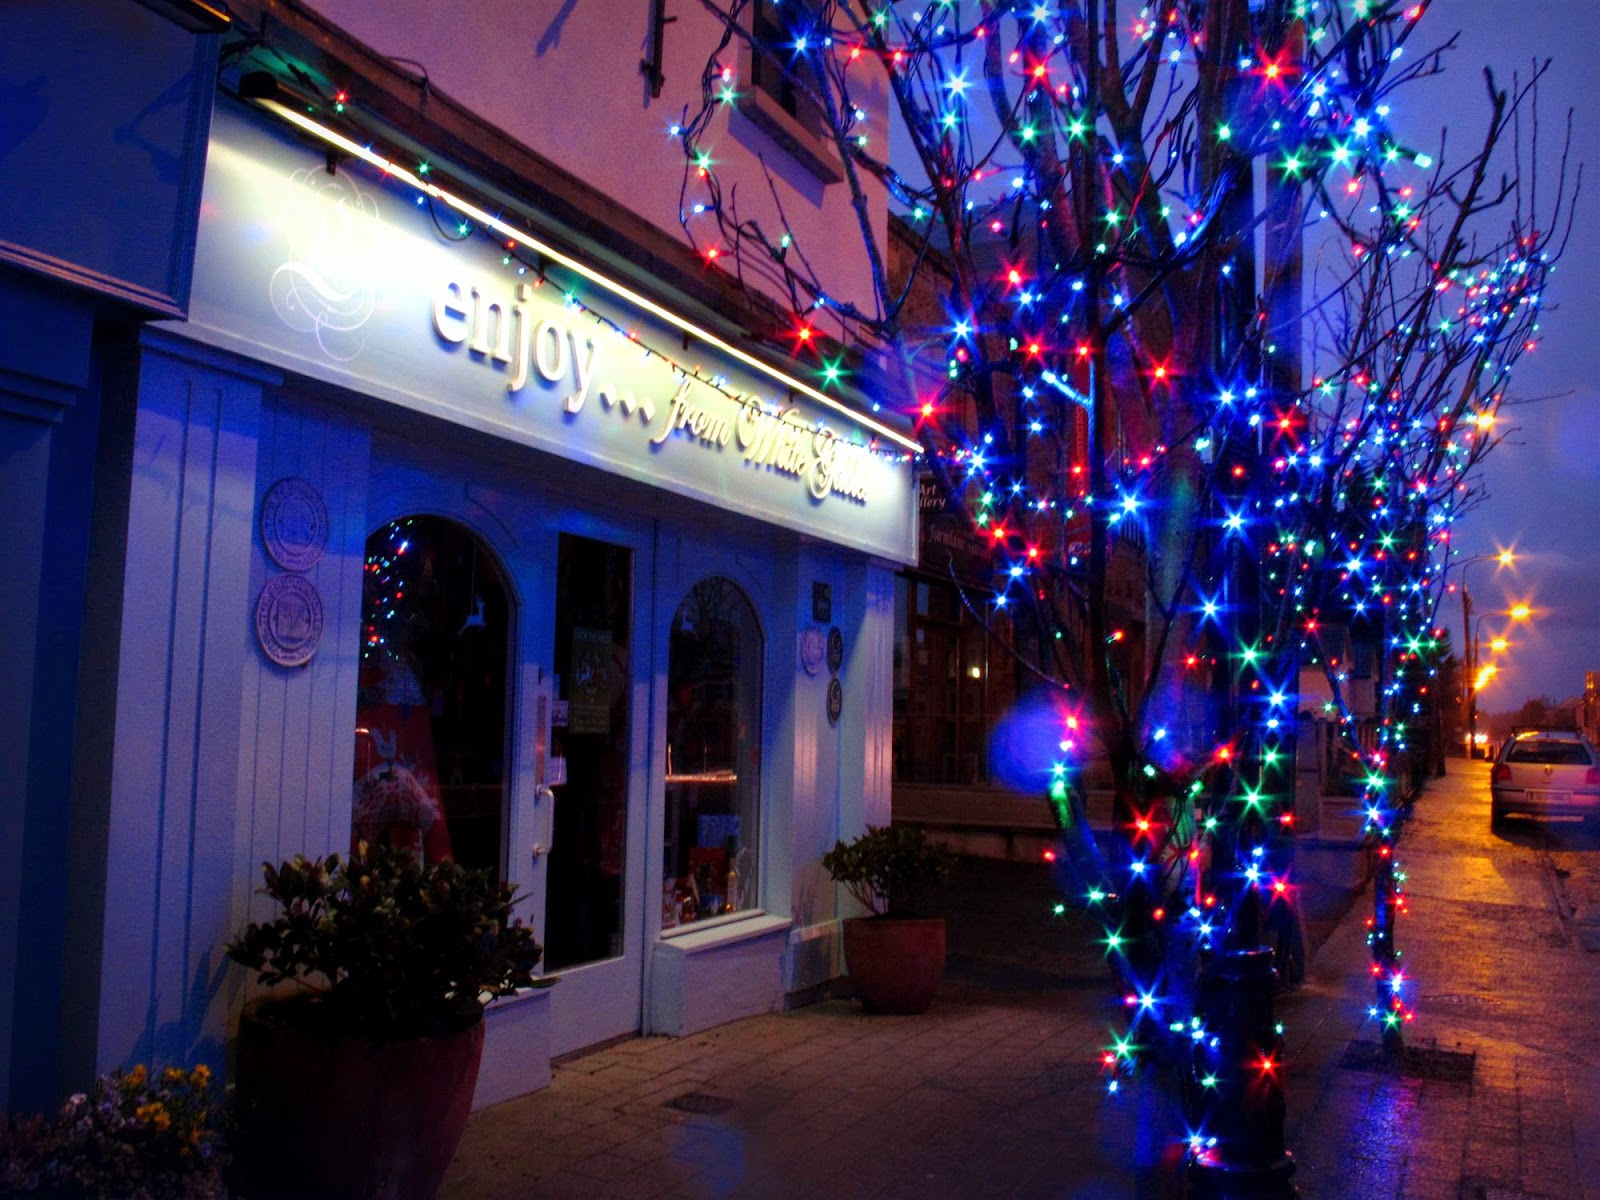 the Enjoy cafe entrance and Christmas lights decorations